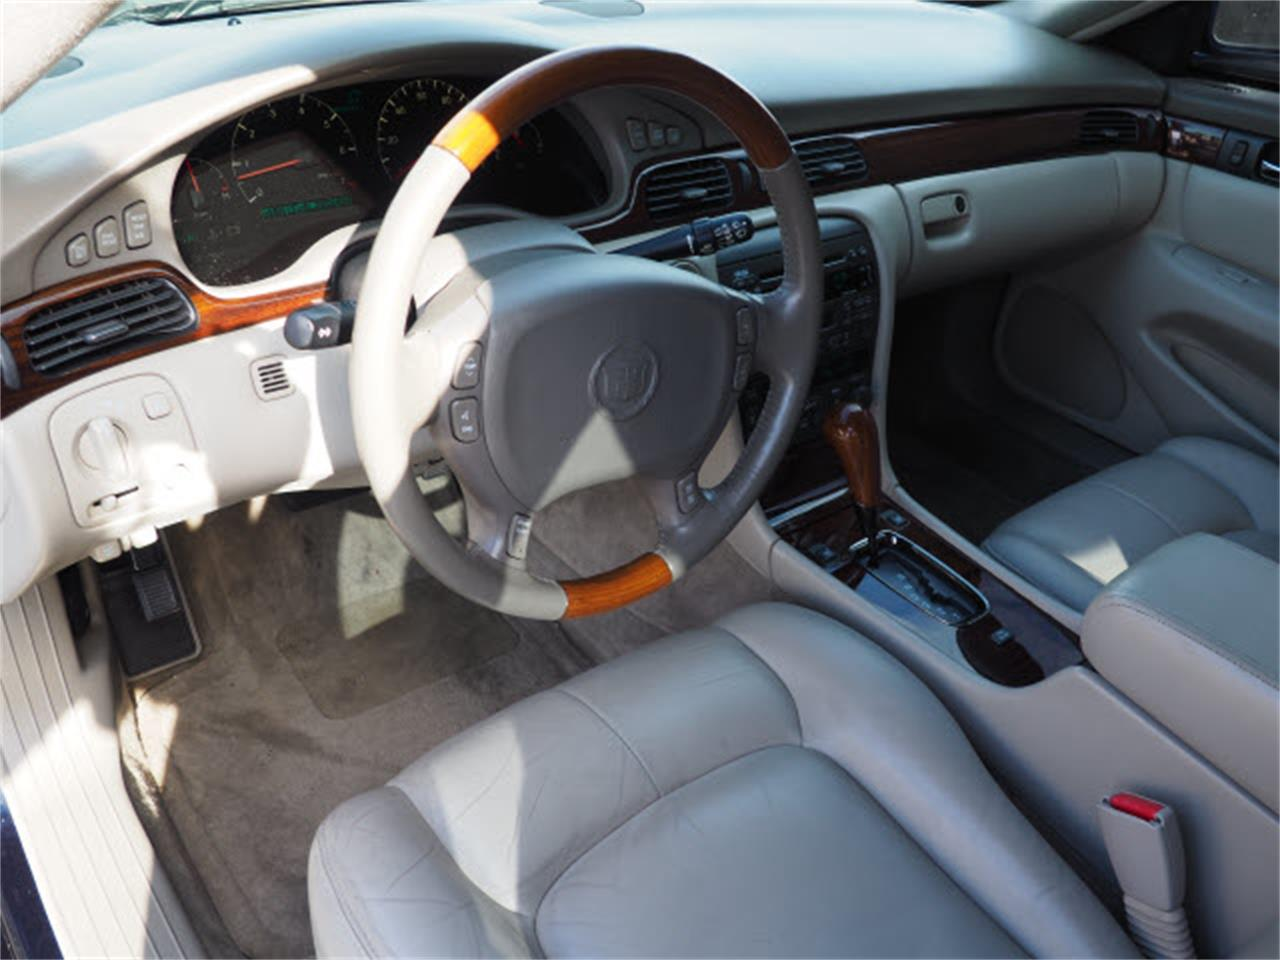 2003 Cadillac Seville (CC-1263873) for sale in Tacoma, Washington